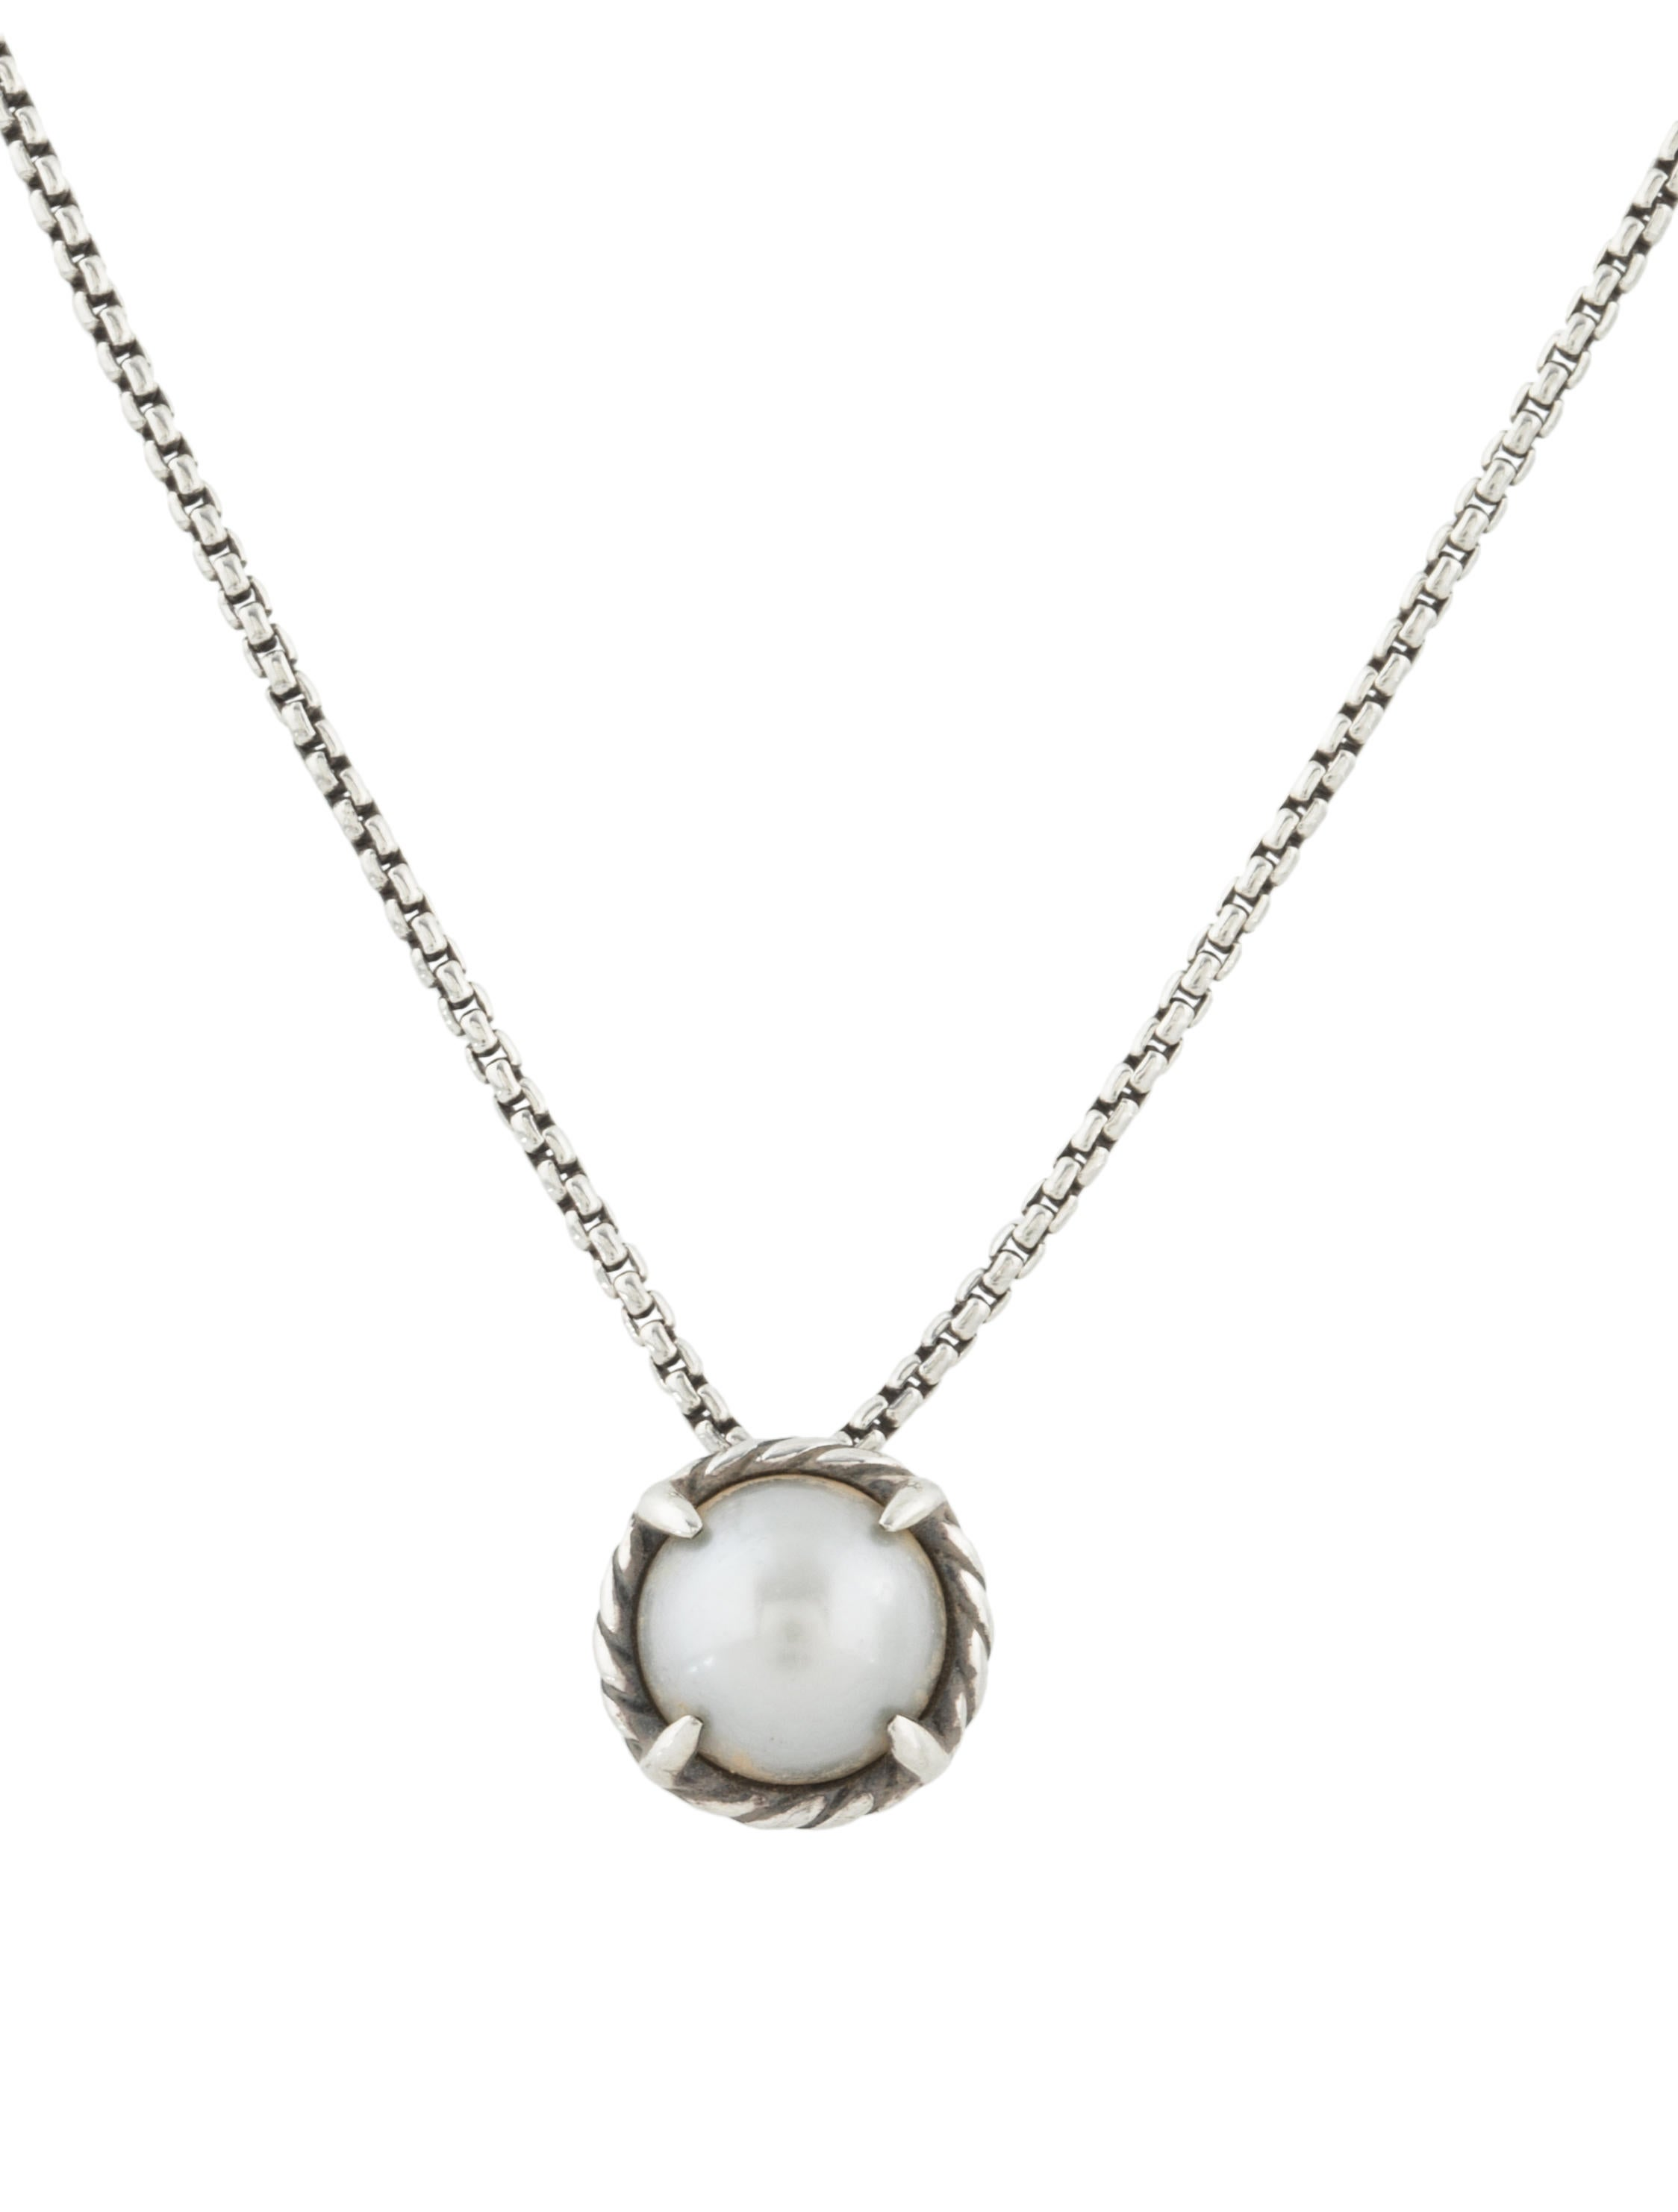 david yurman ch226telaine pearl pendant necklace necklaces